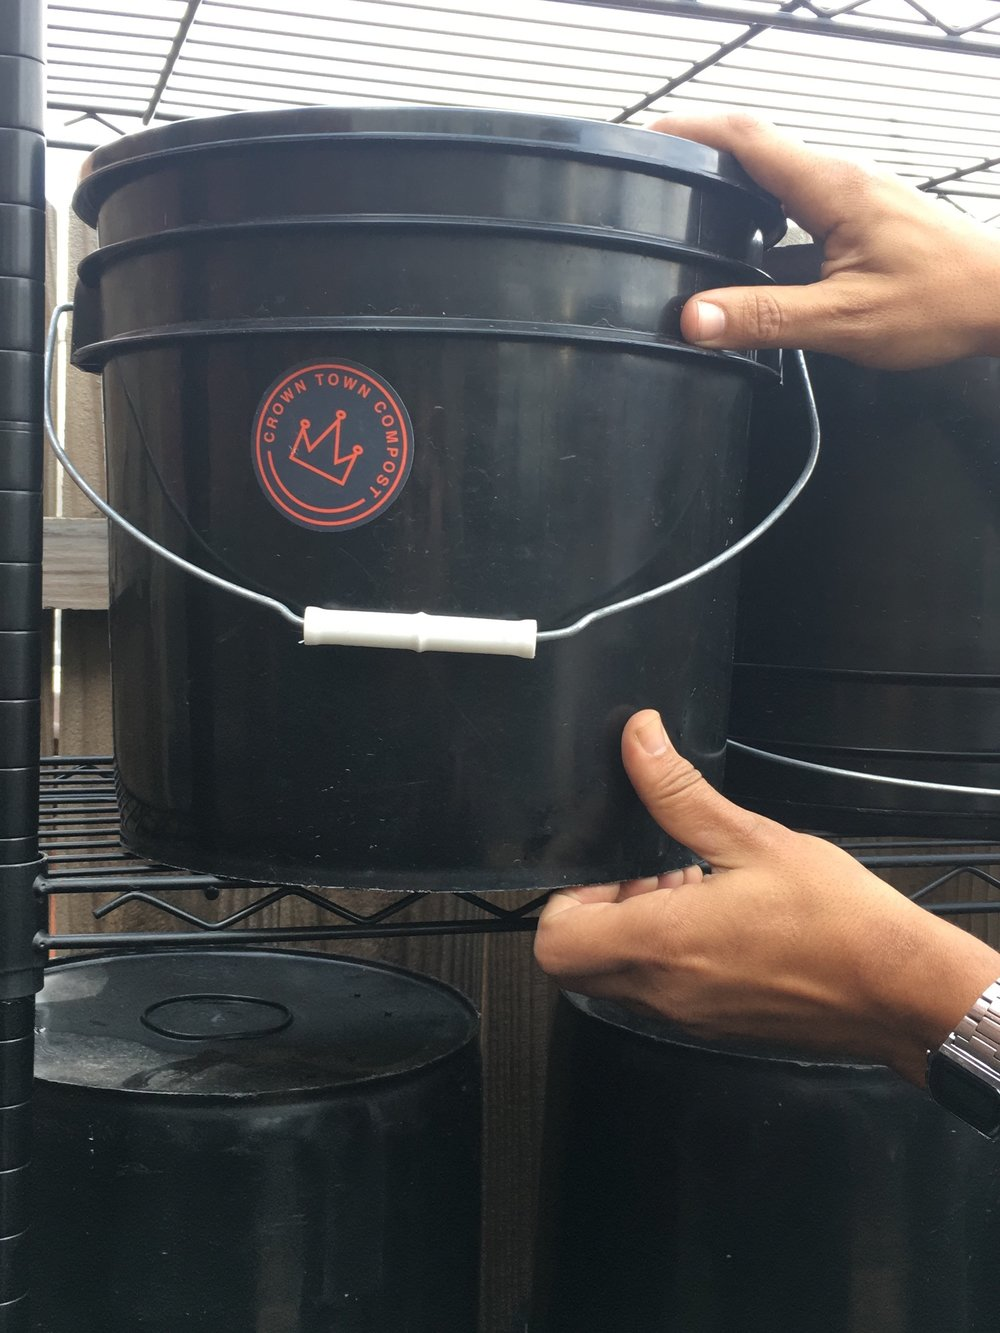 When you fill your bucket up again bring it back and we will empty and clean it for you! - Lather, rinse, repeat!